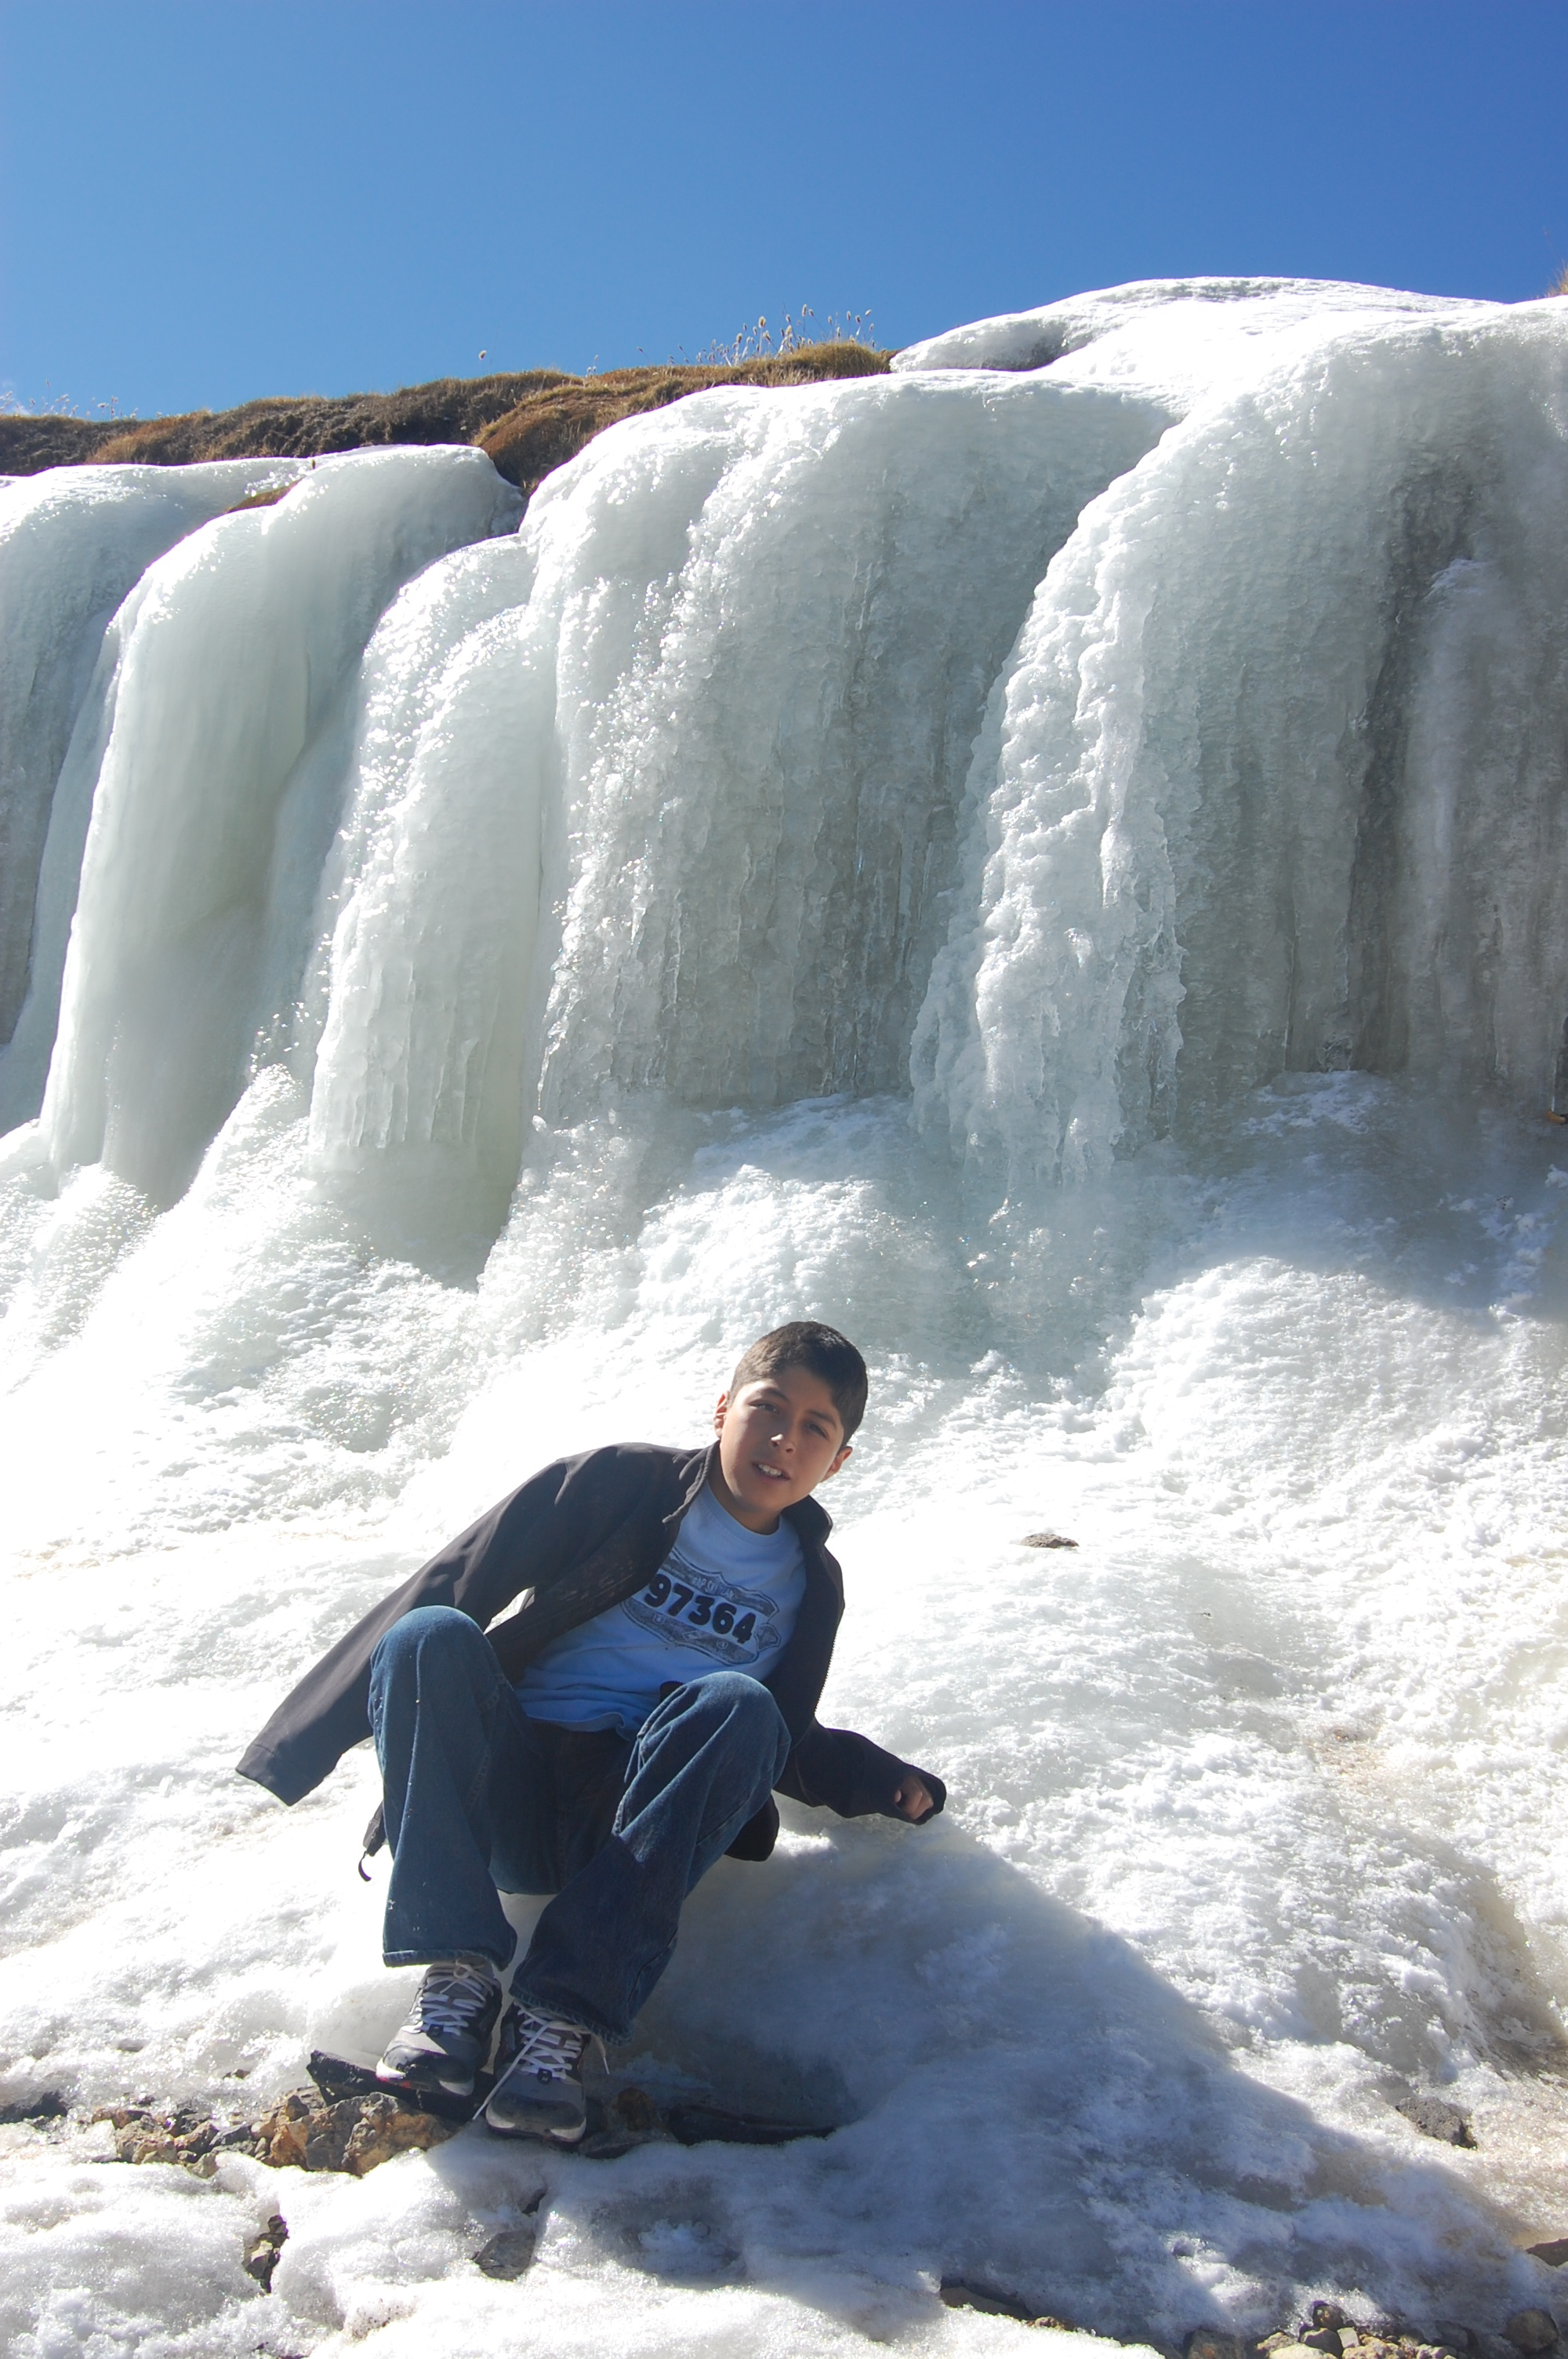 Chris on a frozen waterfall or something, ~16,000 feet up!